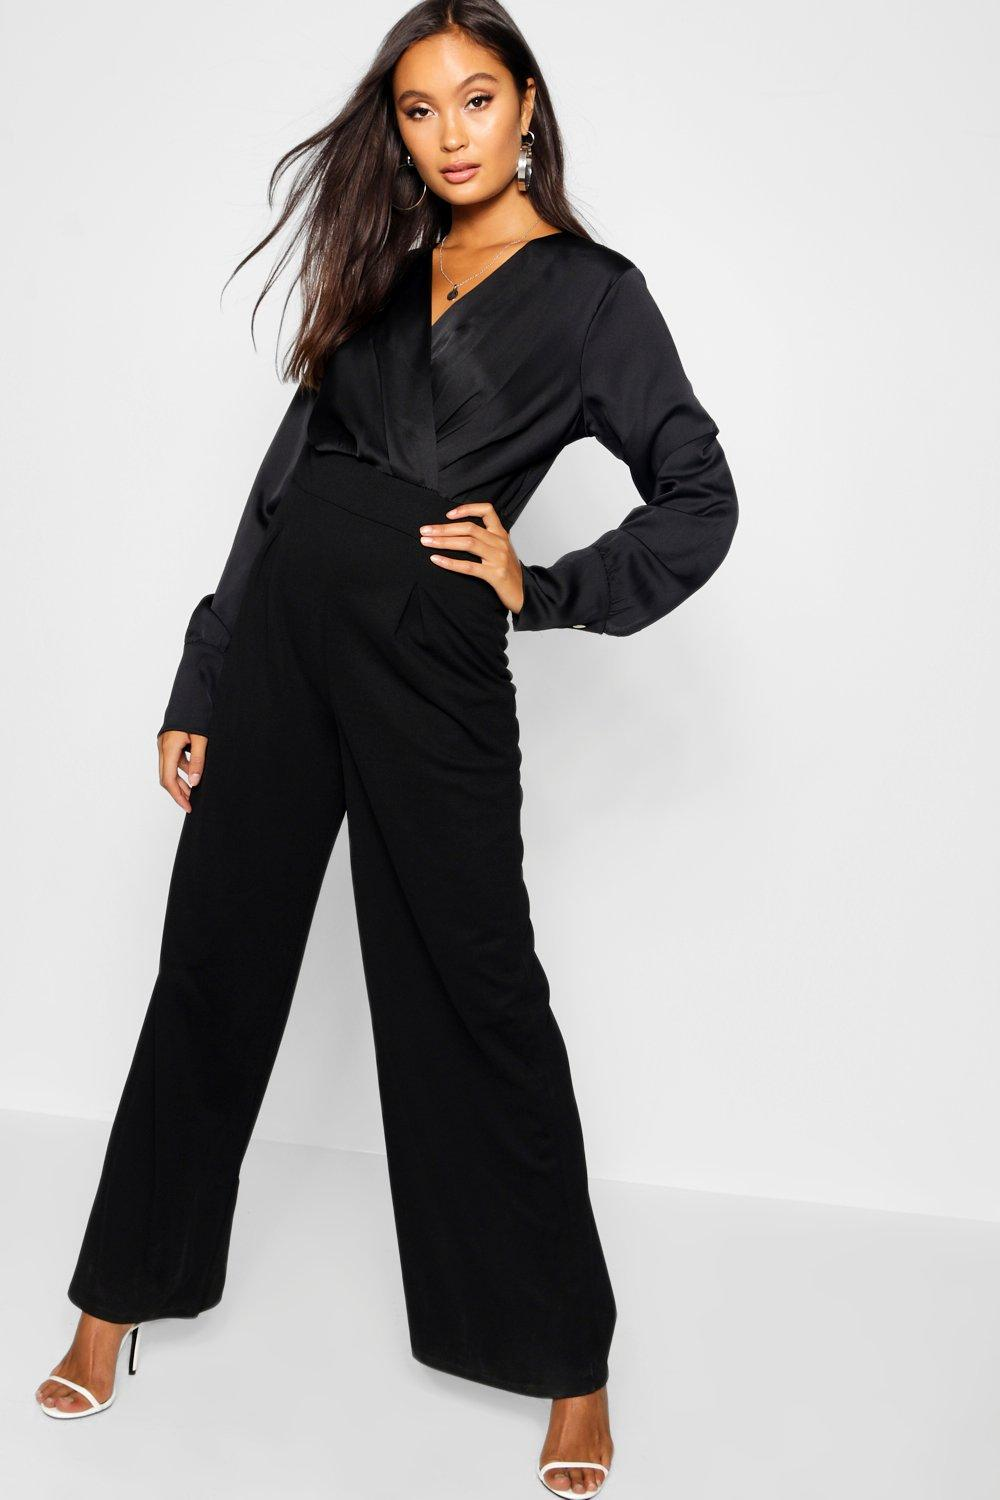 black Jumpsuit Contrast Wrap Top Satin Bq4nUWZw